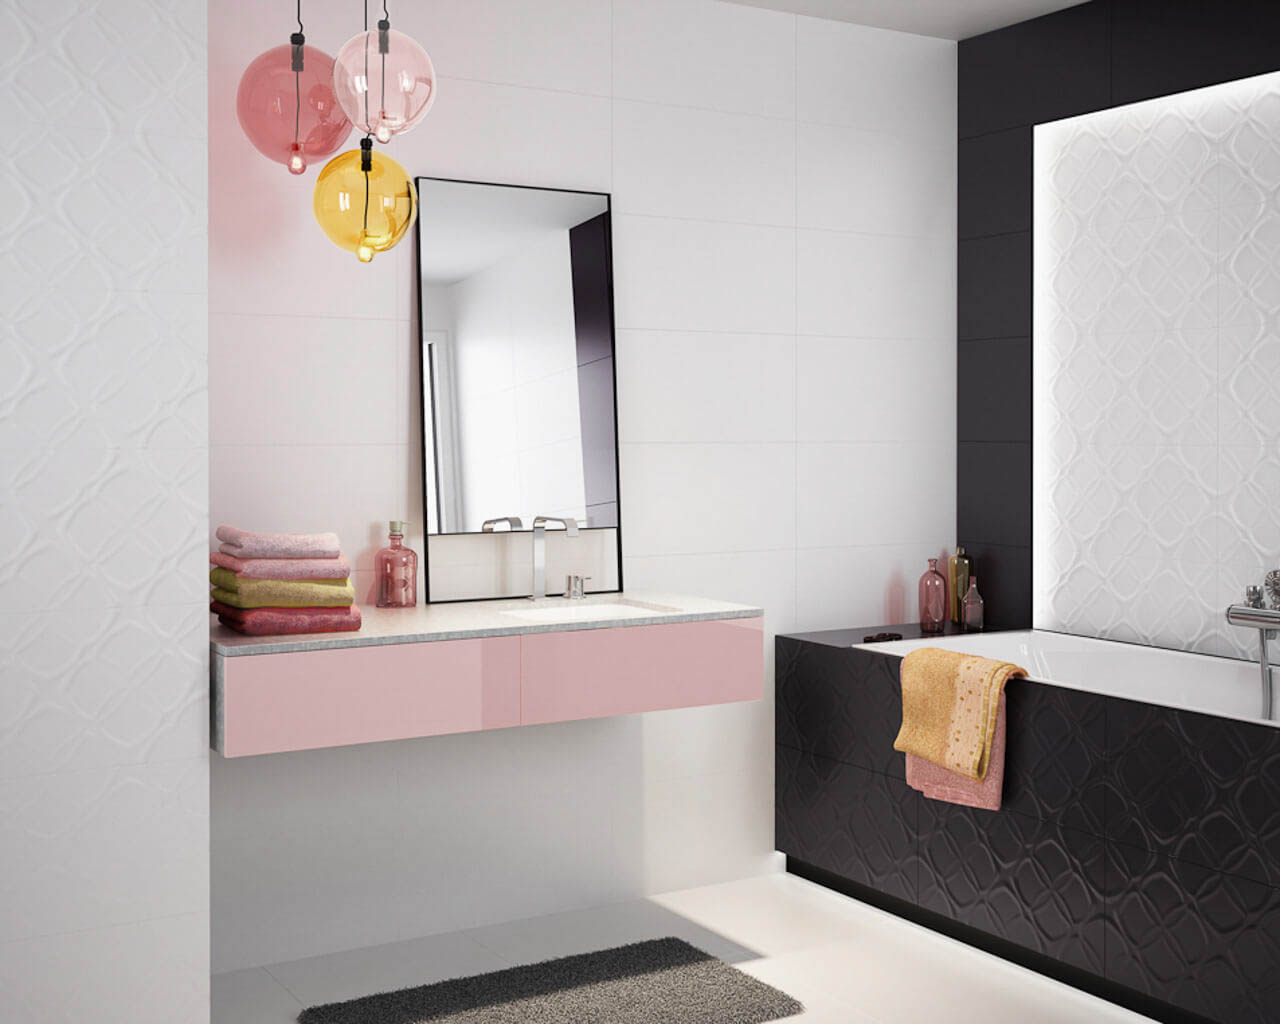 kleines wei schwarzes bad mit einer badewanne ceramika paradyz. Black Bedroom Furniture Sets. Home Design Ideas